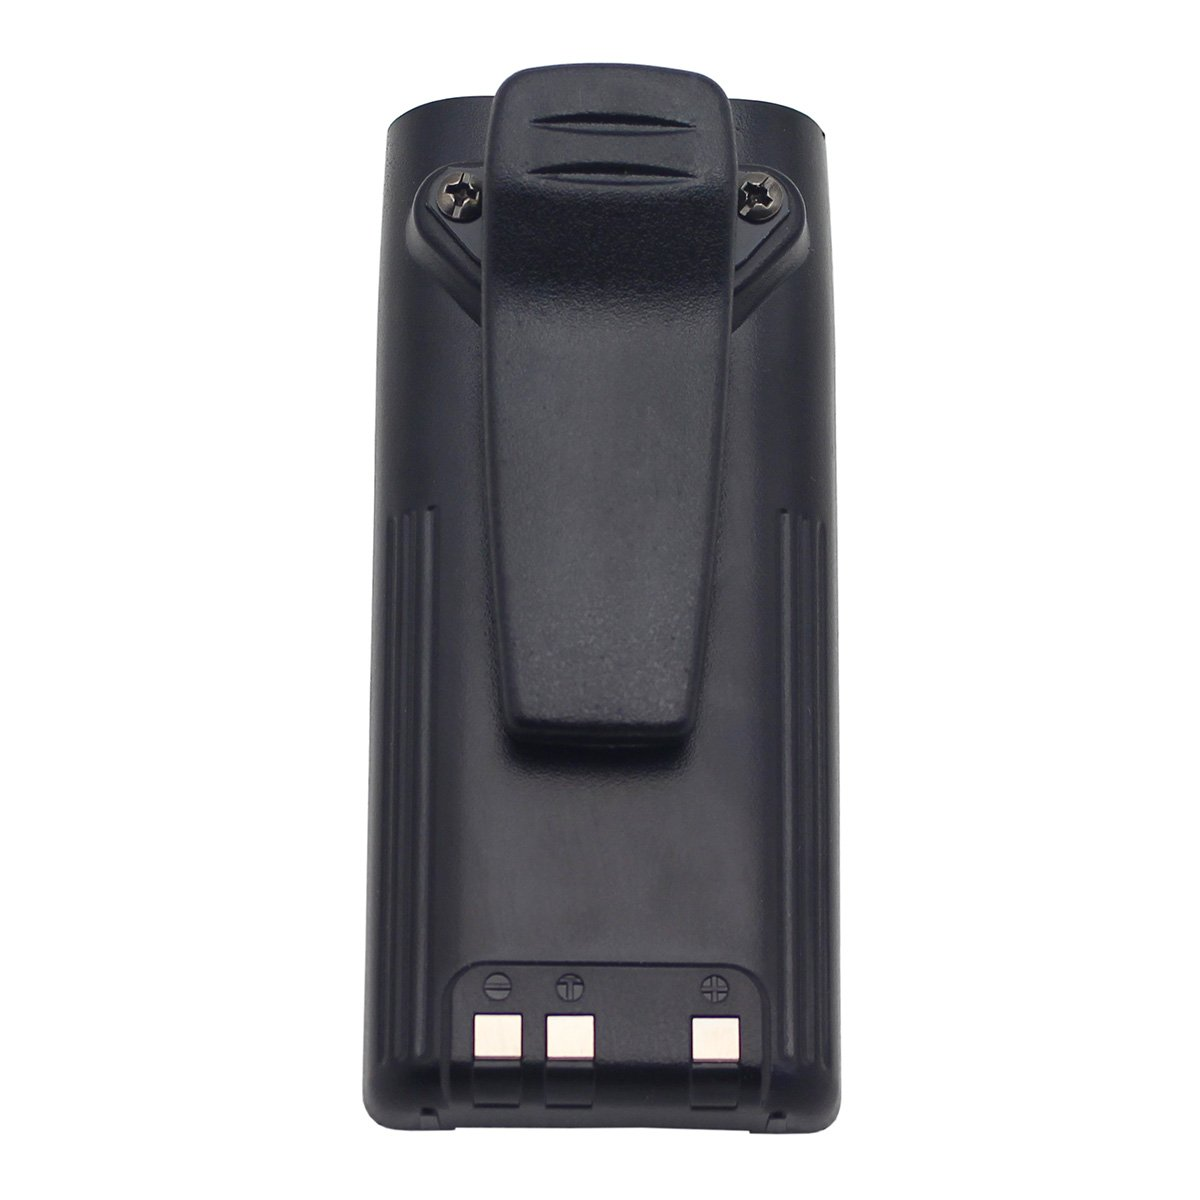 GoodQbuy 1800mAh Replacement Two-Way Radio Battery Packs BP-209 BP-210 BP-222 BP-209N BP-210N BP-222N For ICOM Radios C-A6 IC-A24 IC-F30GT IC-F30GS IC-F40GT IC-F40GS IC-F3GT IC-F3GS IC-V8